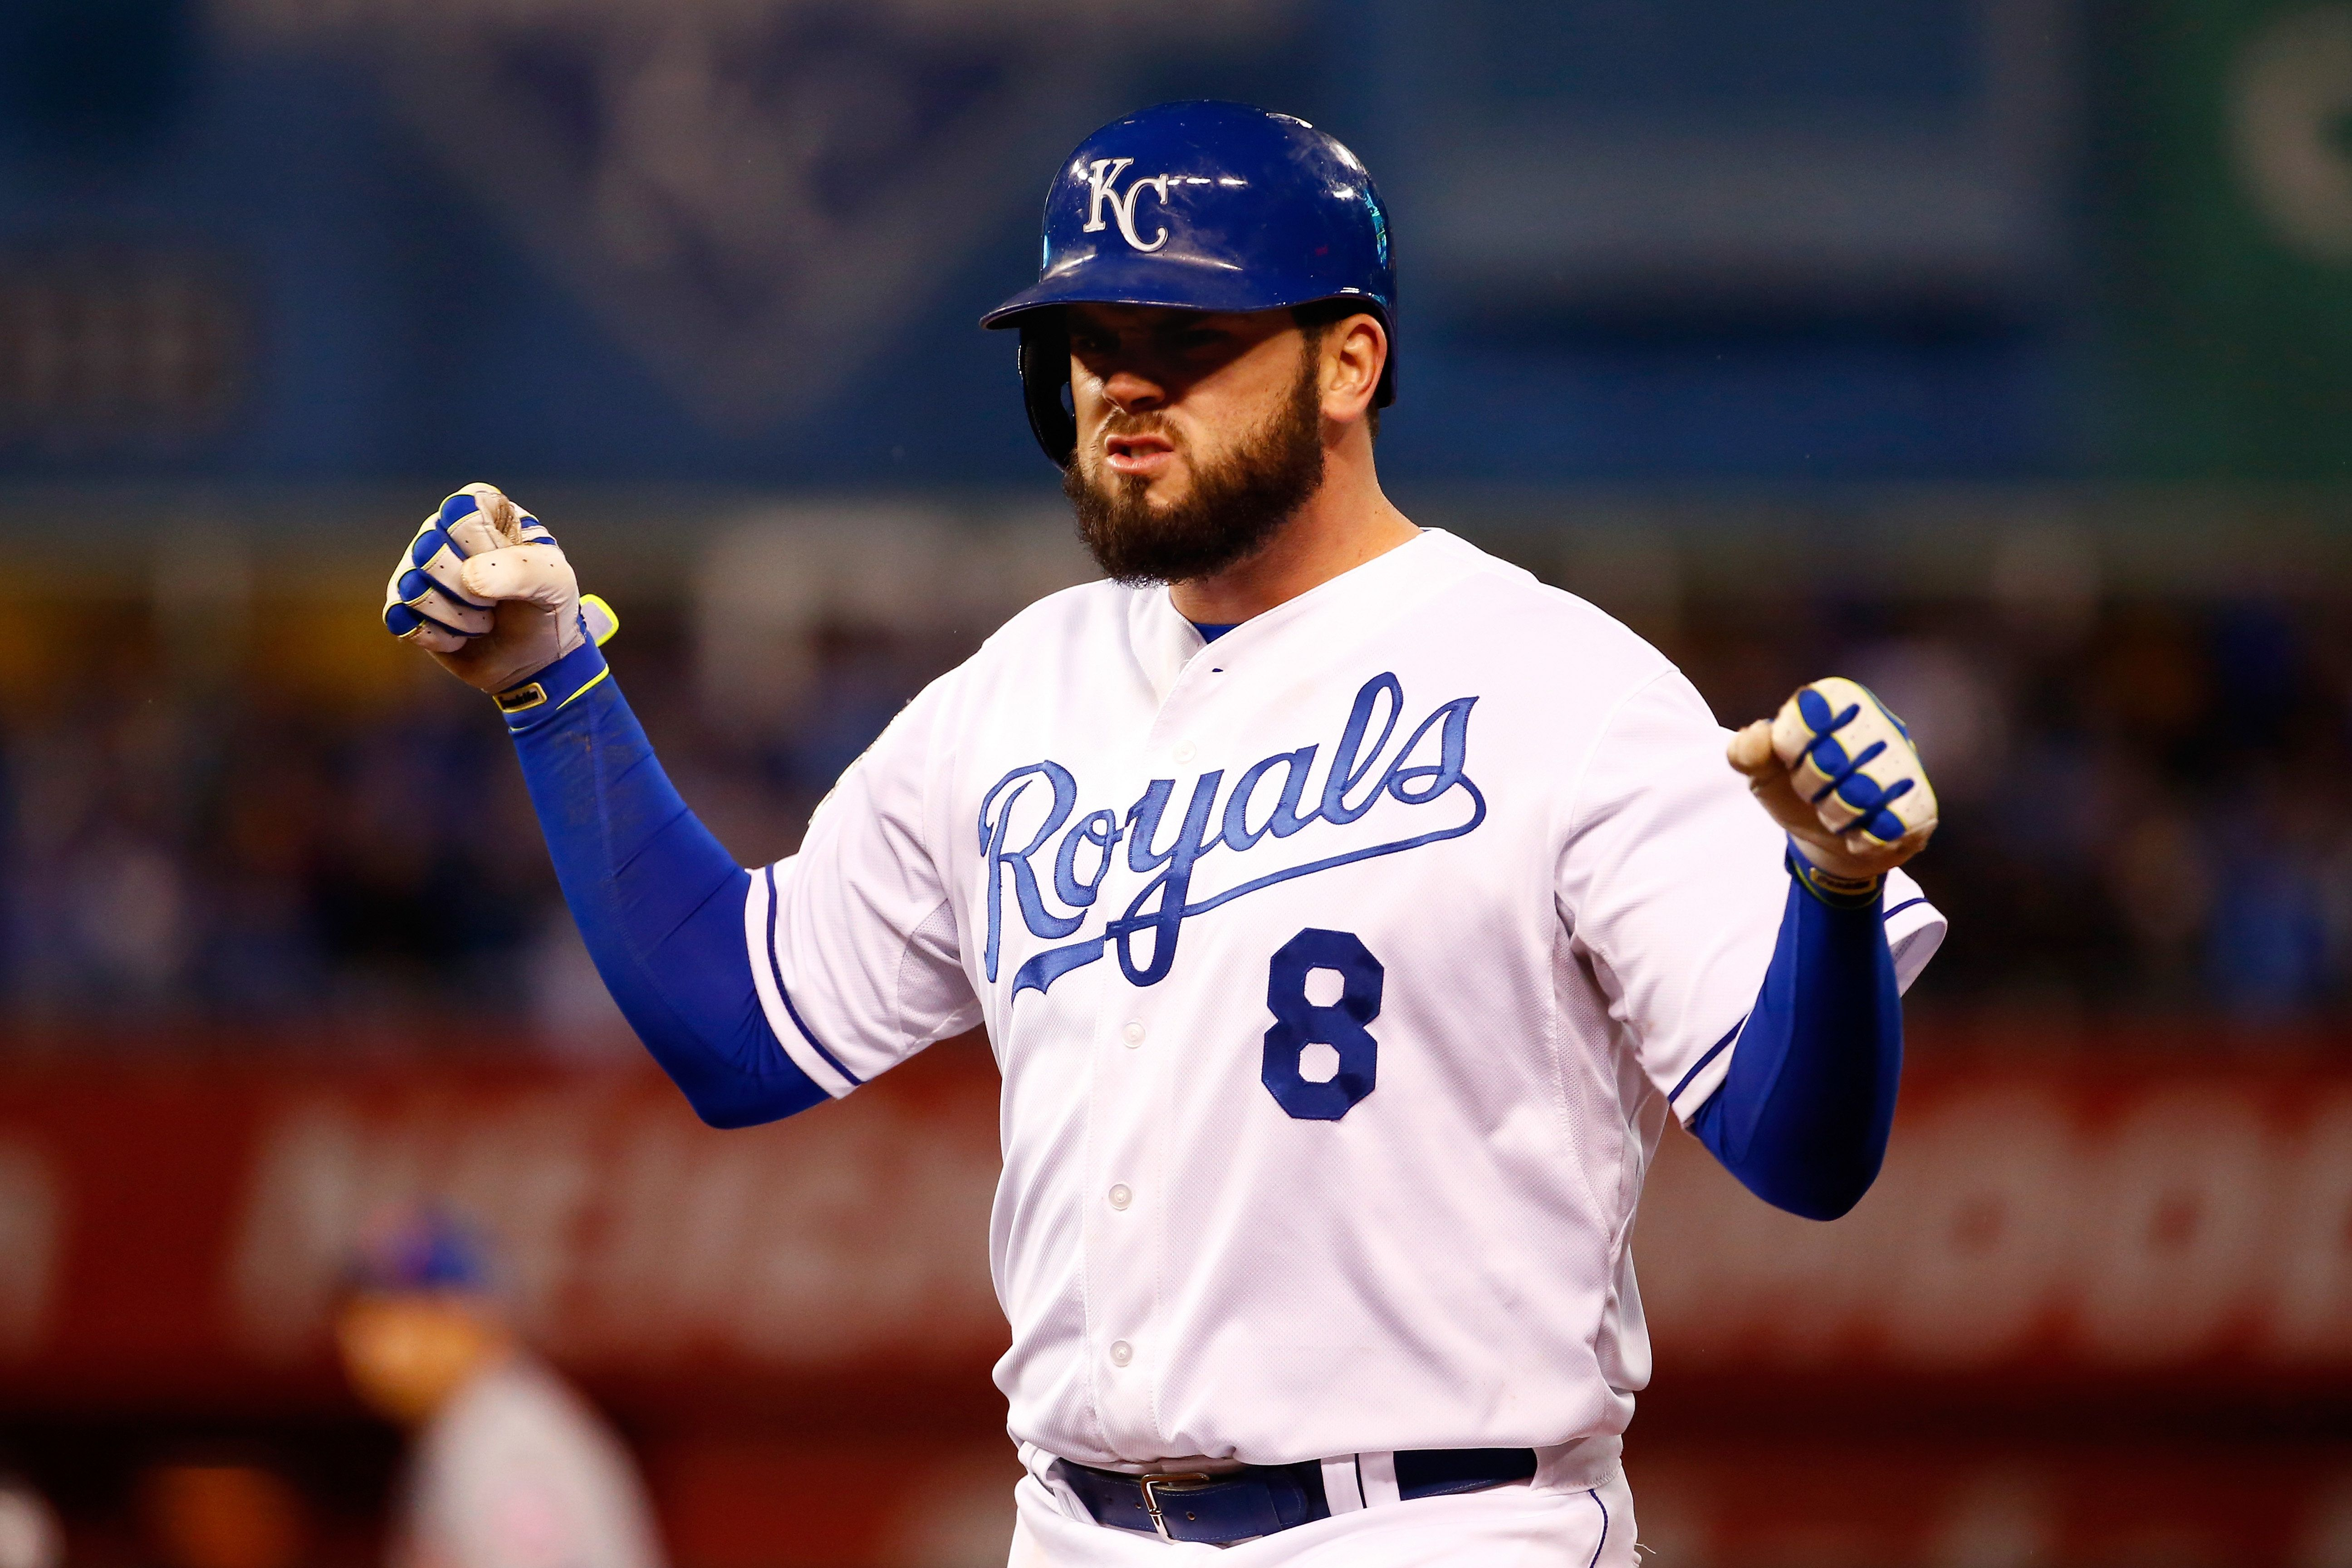 KANSAS CITY, MO - OCTOBER 28:  Mike Moustakas #8 of the Kansas City Royals celebrates after hitting an RBI single to score Eric Hosmer #35 of the Kansas City Royals (not pictured) in the fifth inning against the New York Mets in Game Two of the 2015 World Series at Kauffman Stadium on October 28, 2015 in Kansas City, Missouri.  (Photo by Jamie Squire/Getty Images)